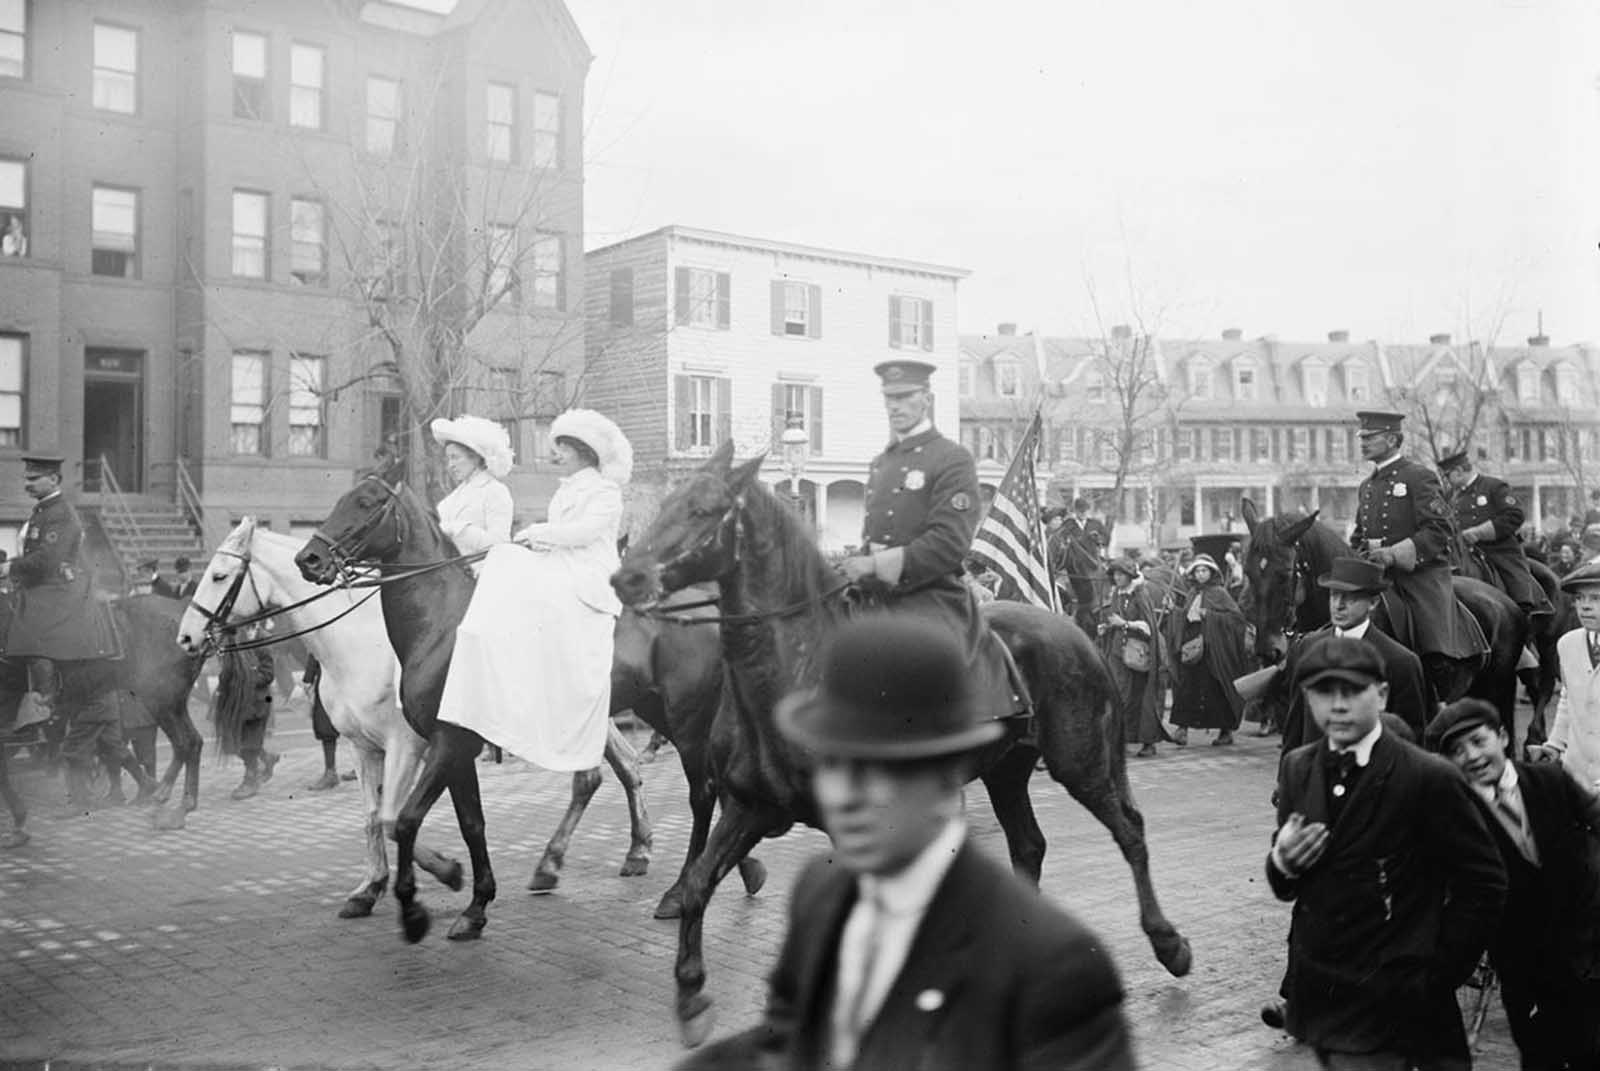 Women suffrage hikers arriving in Washington, District of Columbia, from New York, 1913.